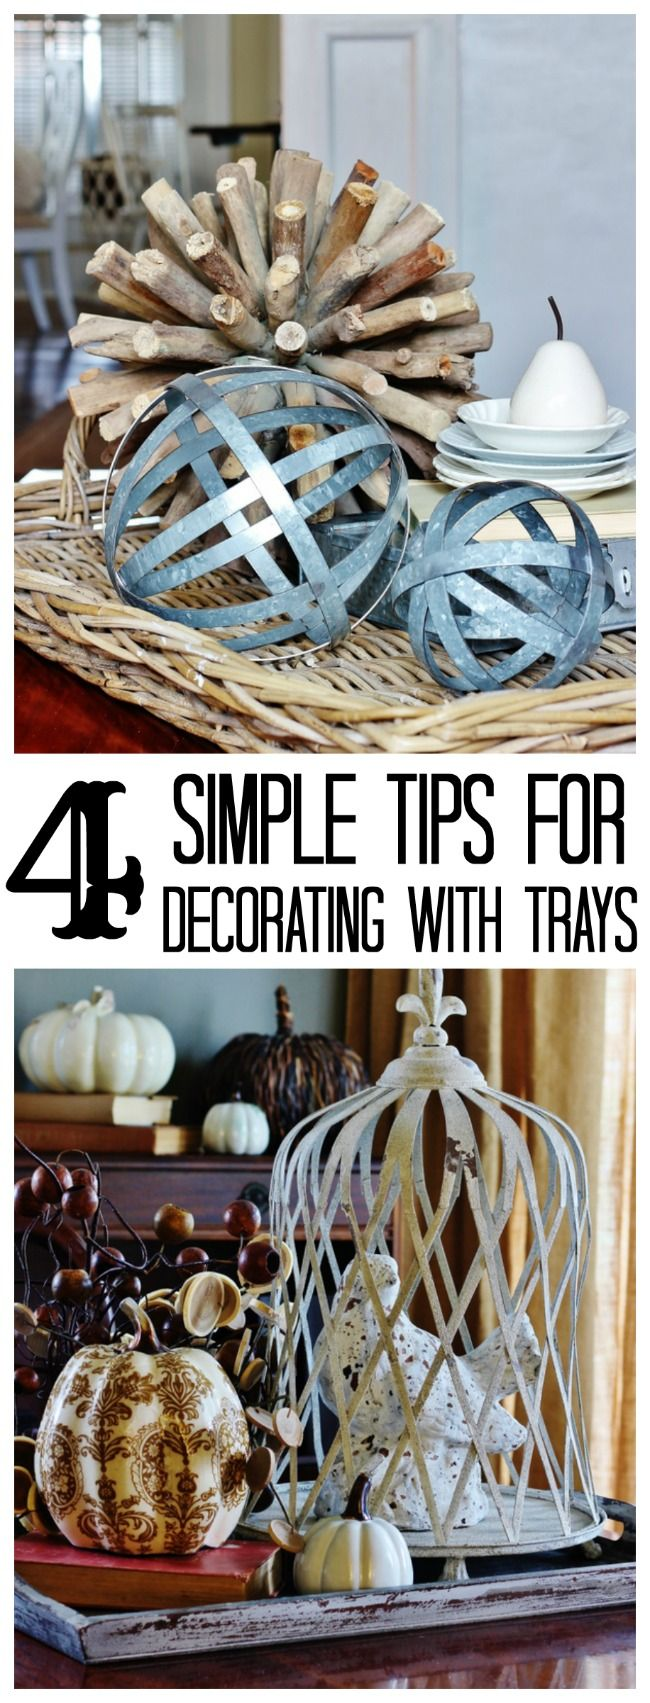 four simple tips for decorating with trays